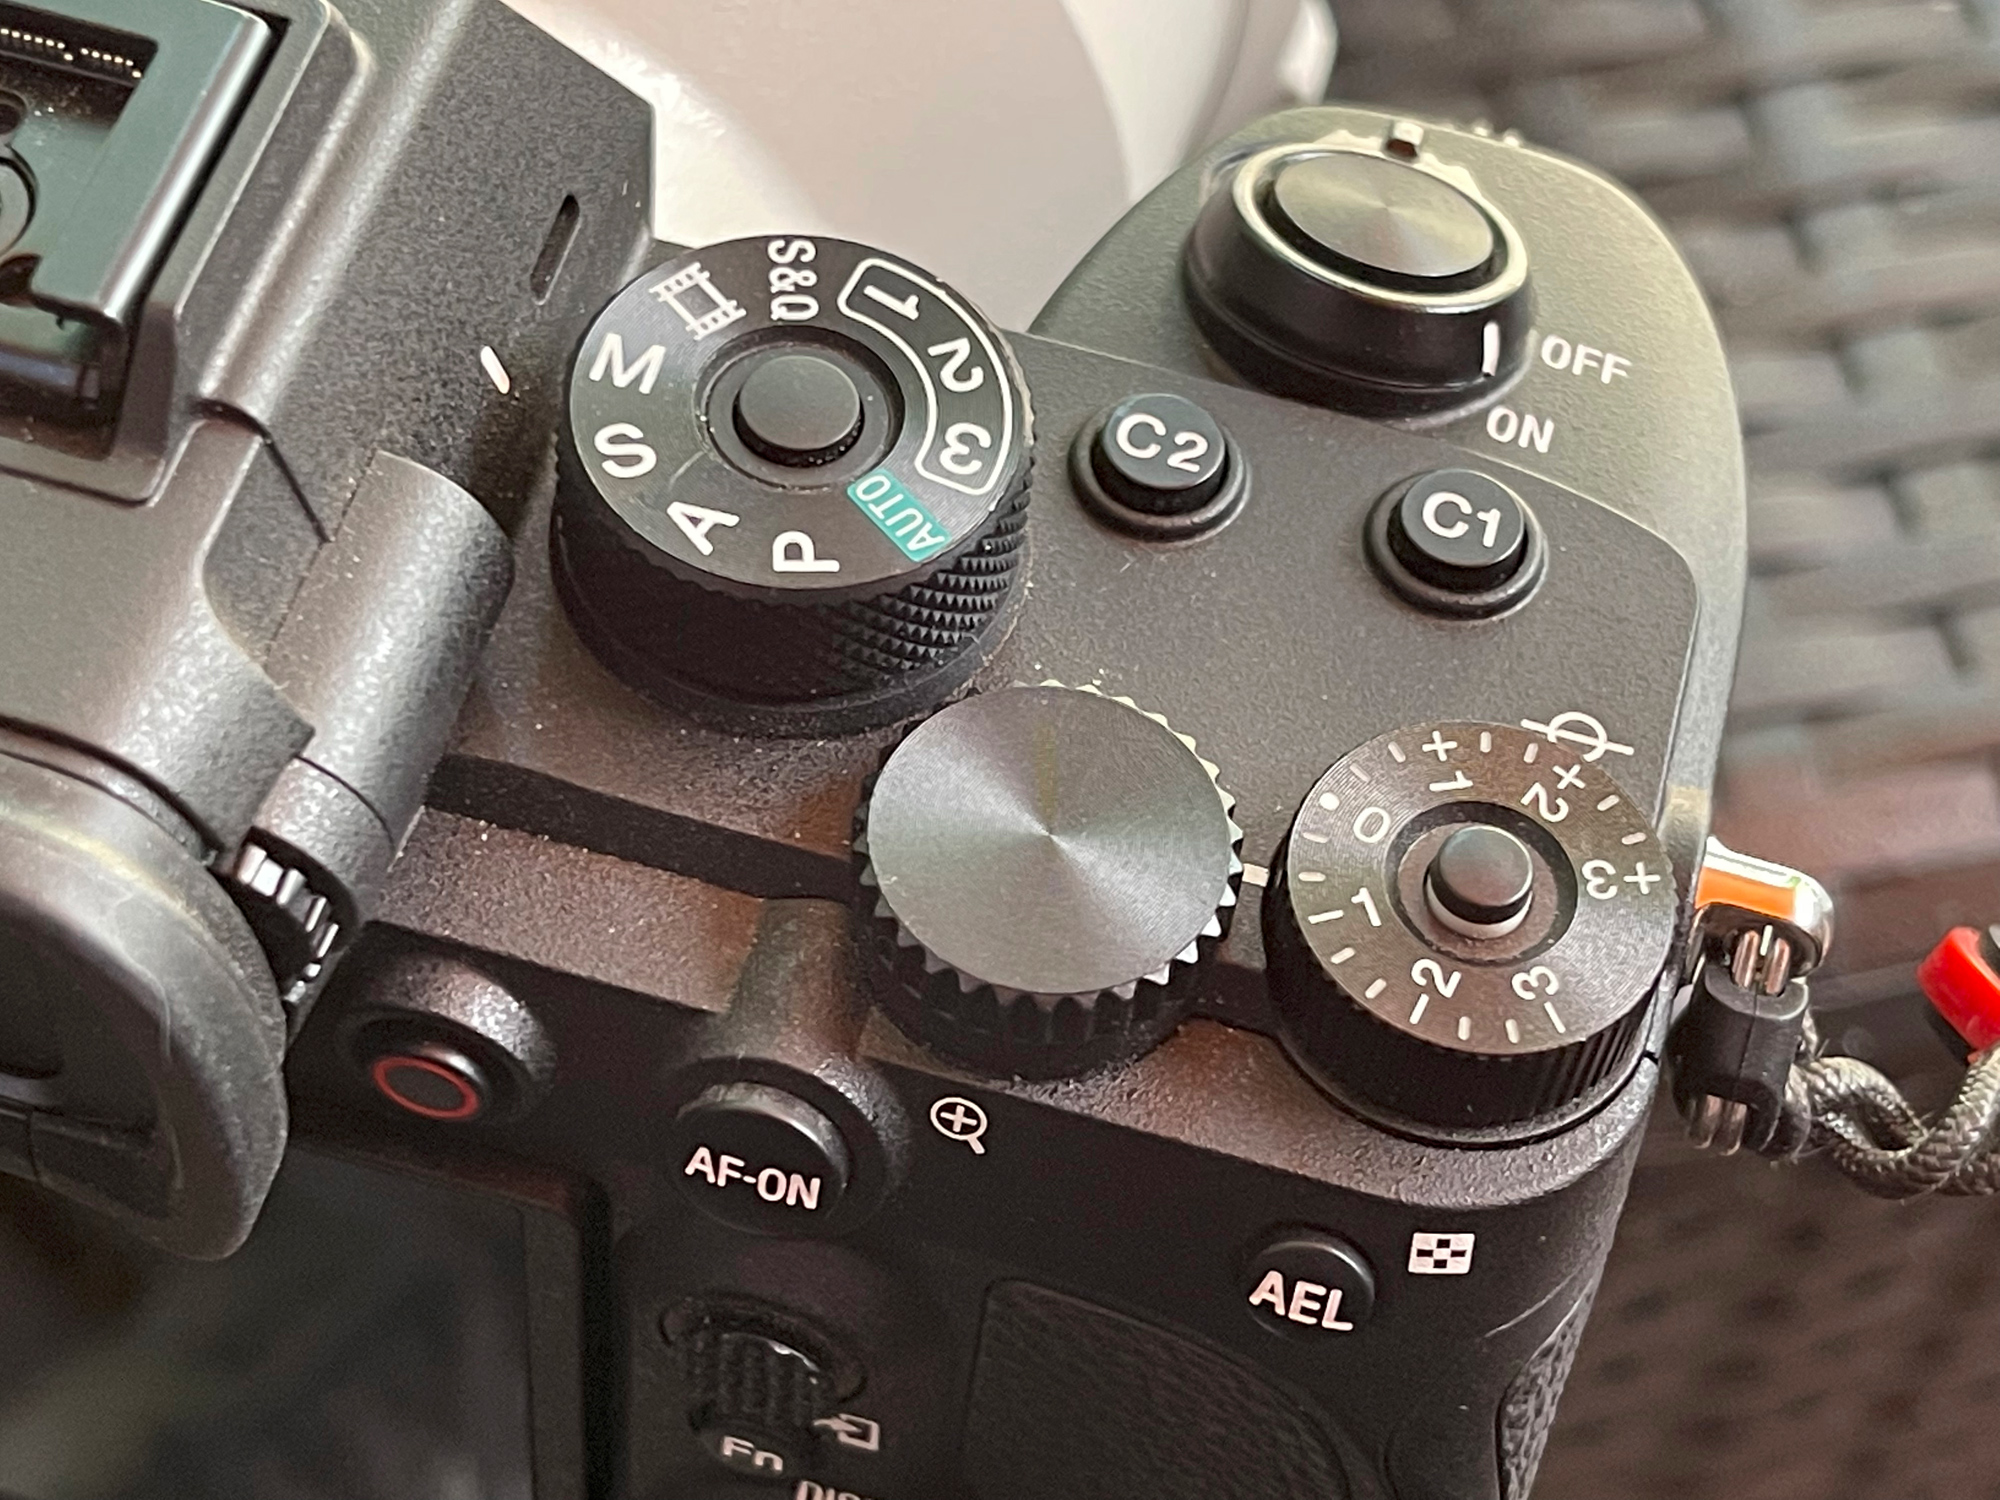 The right side of the camera. All controls are easy to reach and work.